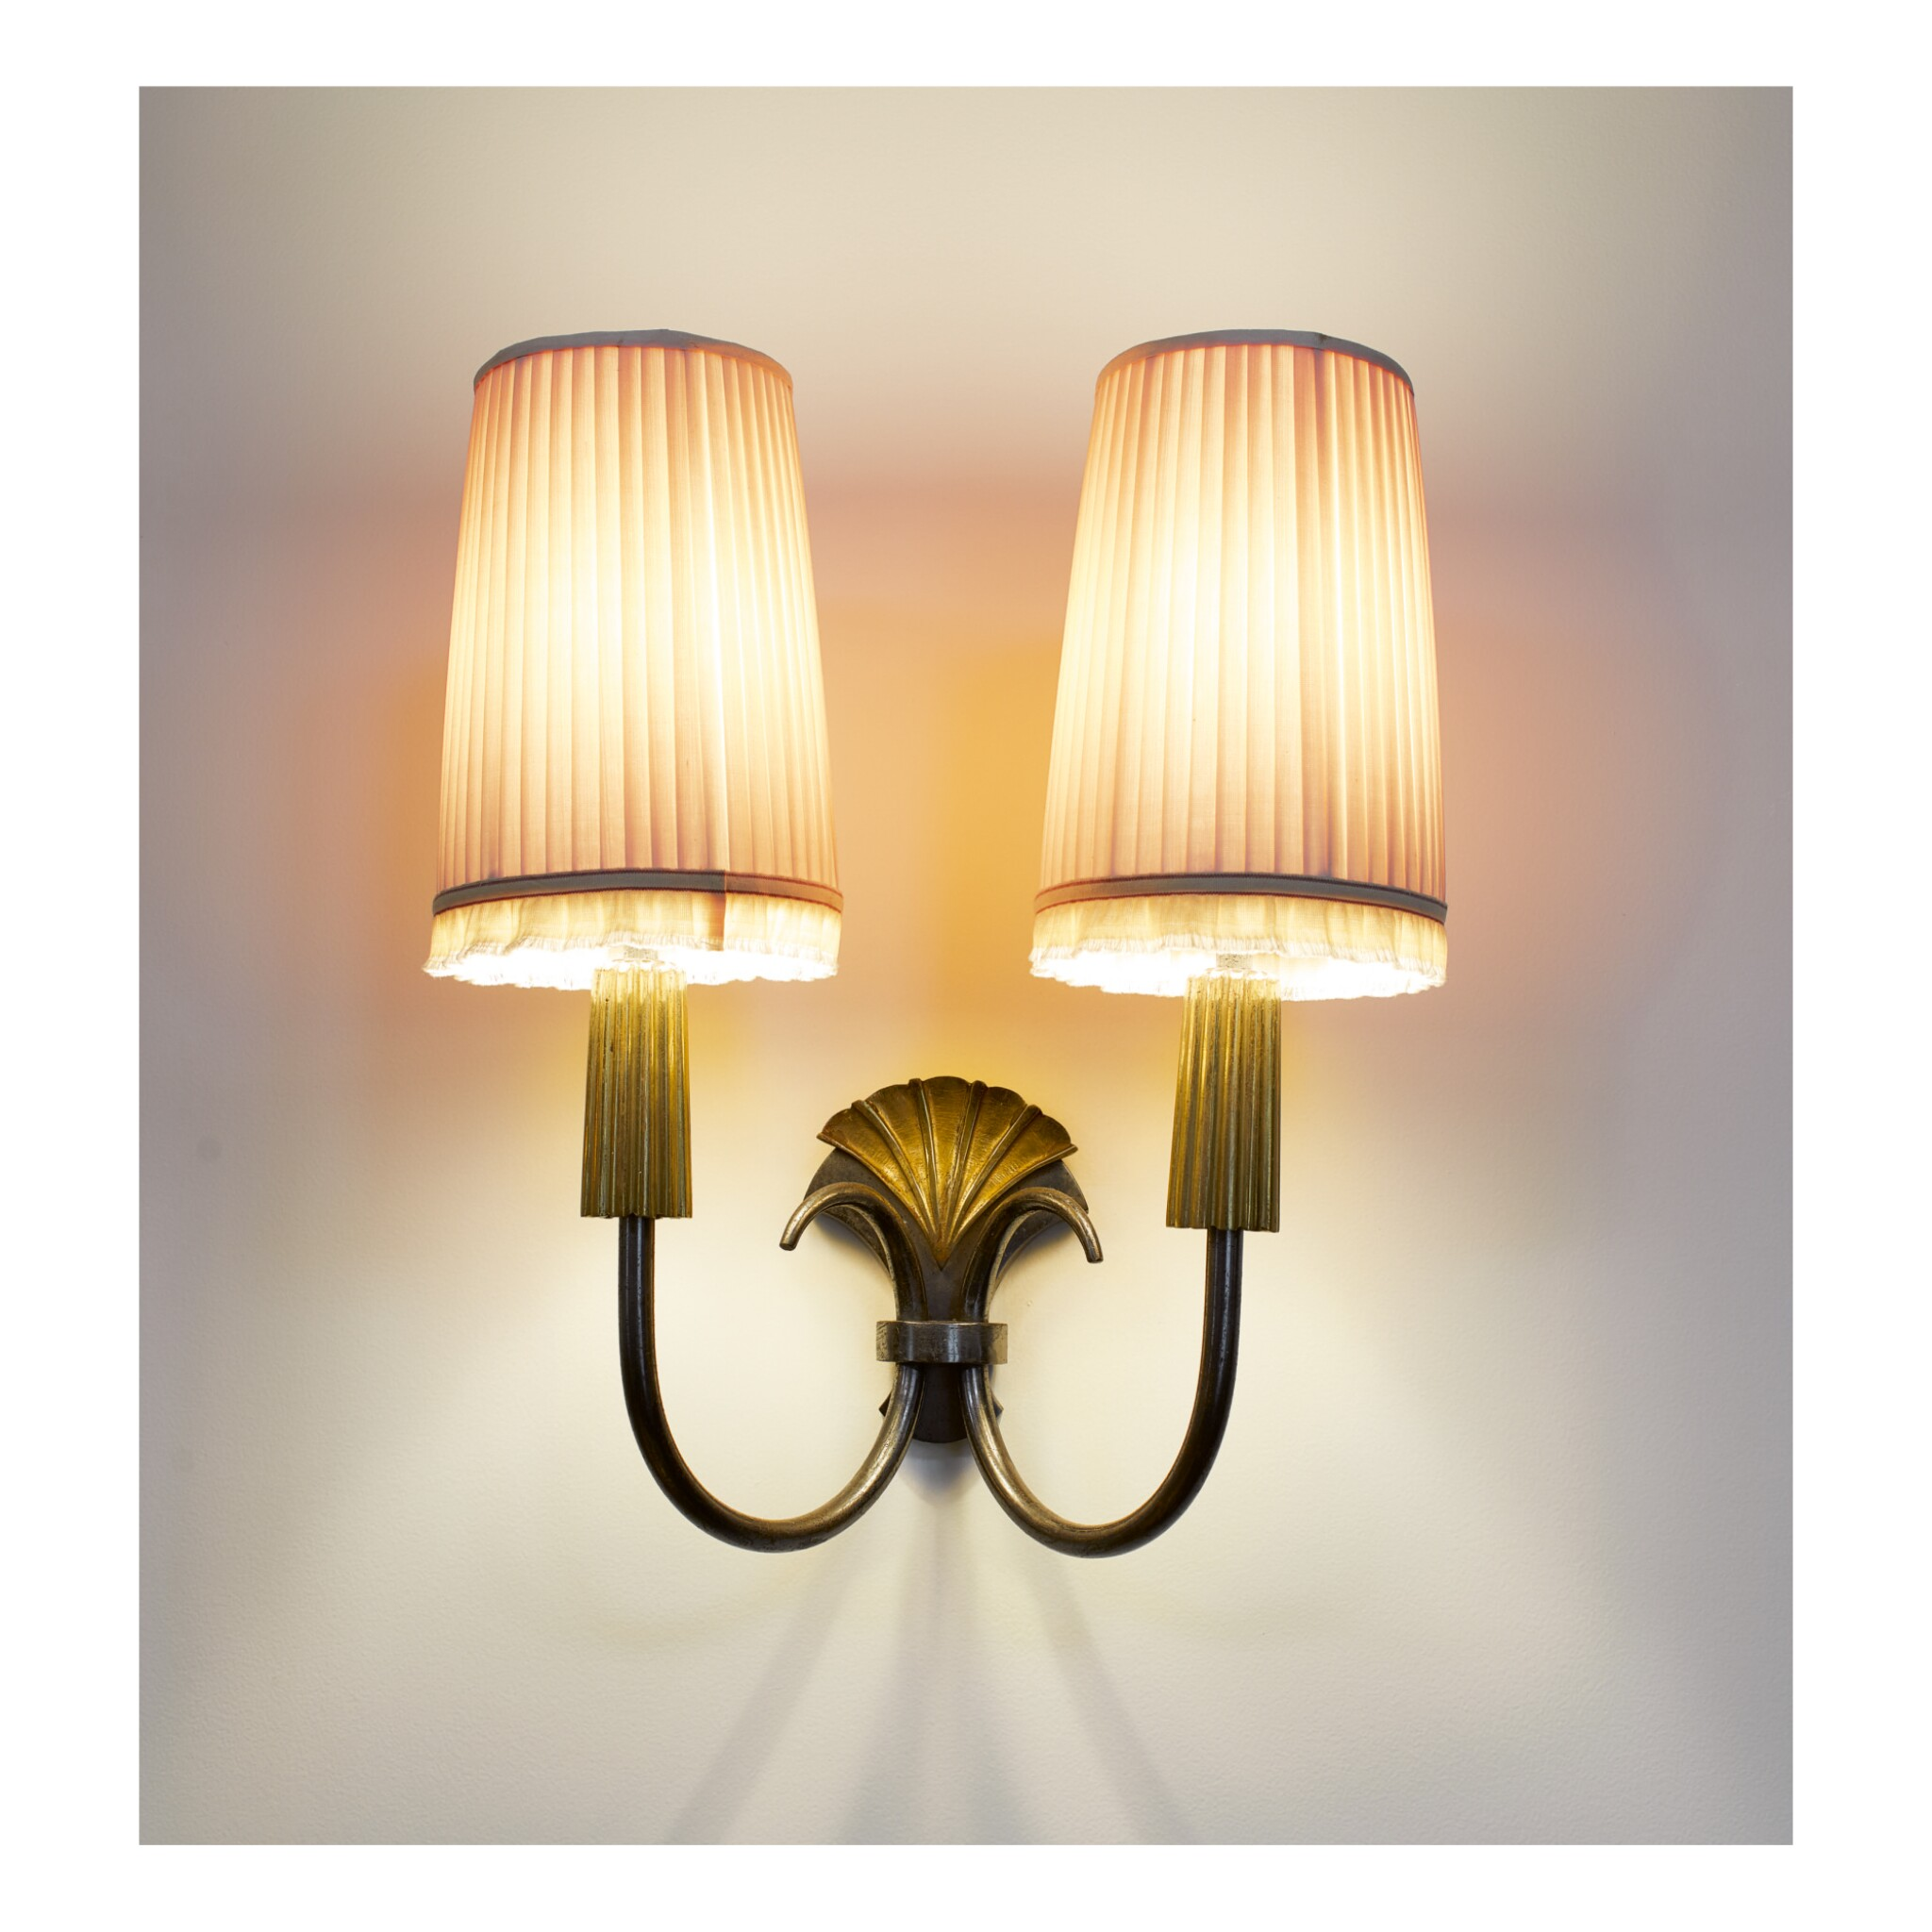 GENET & MICHON | PAIR OF TWO-LIGHT SCONCES